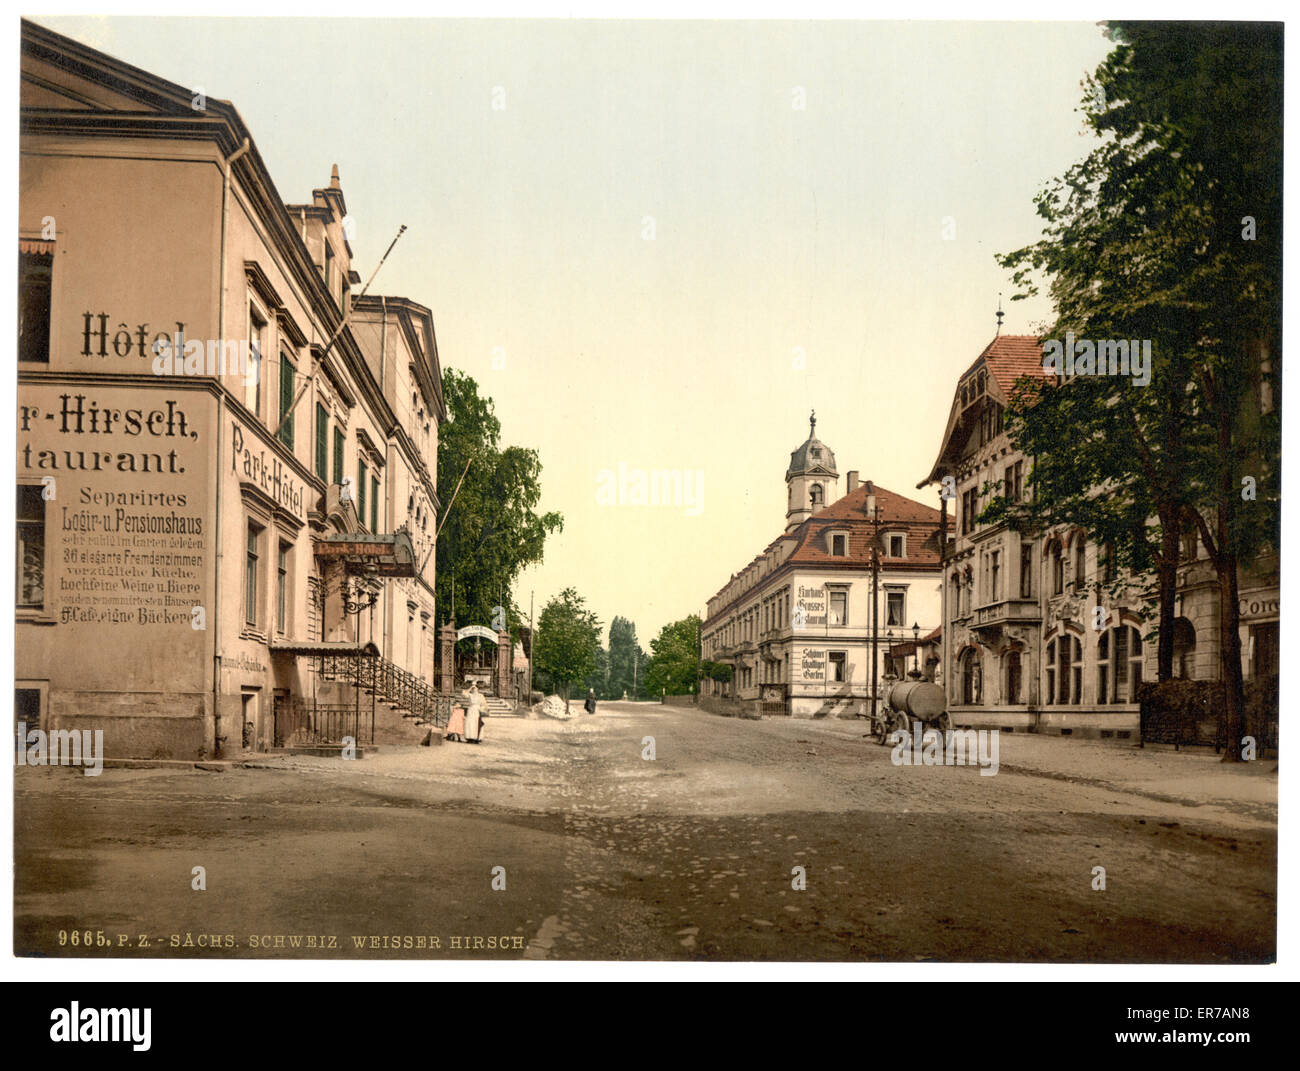 Weisser Hirsch, Saxony, Germany. Date between ca. 1890 and ca. 1900. - Stock Image